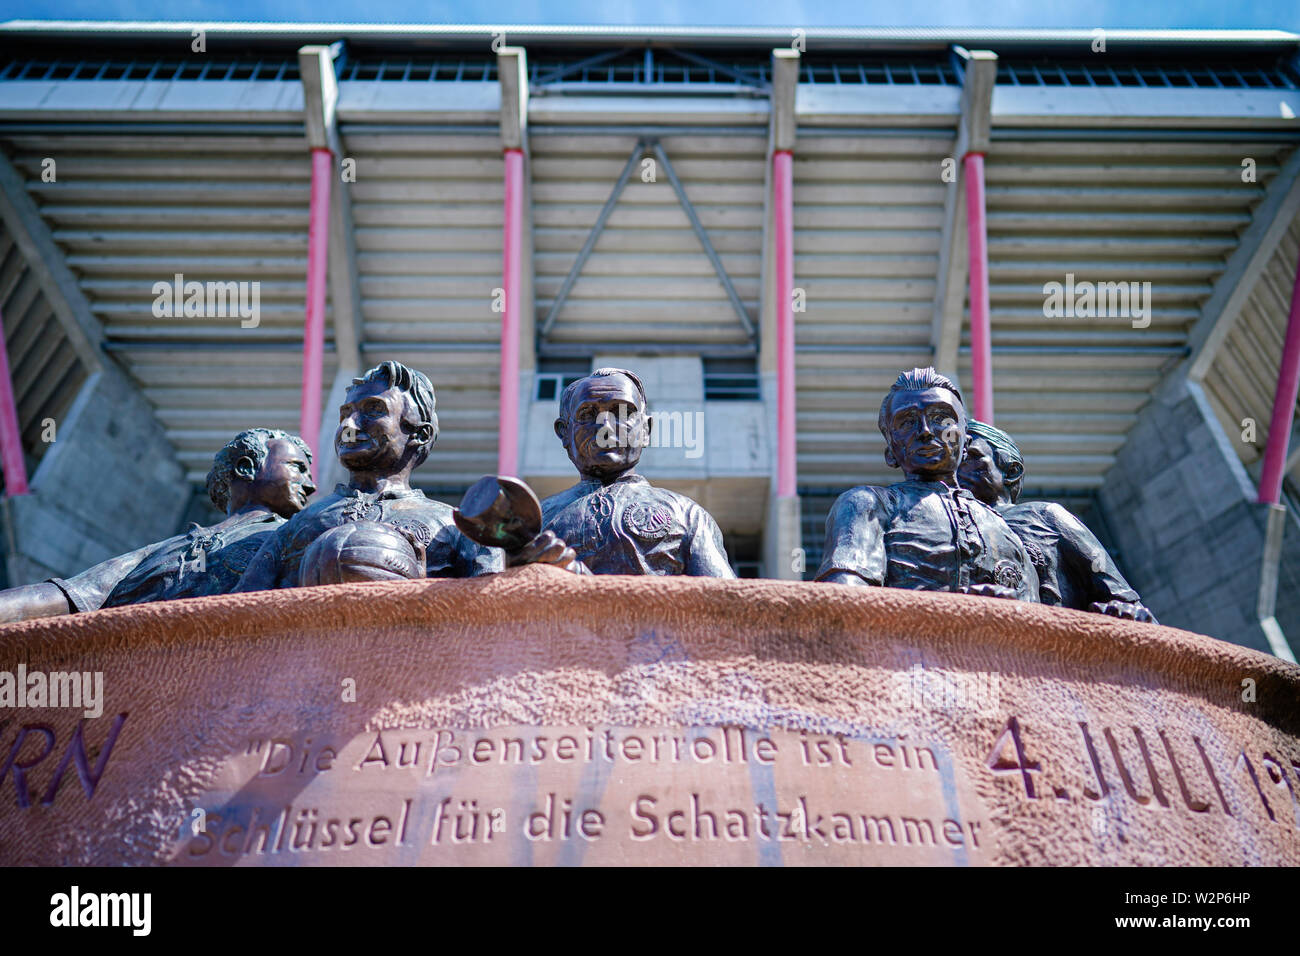 Kaiserslautern, Germany. 10th July, 2019. Soccer, 3rd league: 1st FC Kaiserslautern photo session for the 2019/20 season in the Fritz Walter Stadium. A memorial in front of the Horst-Eckel-Tor commemorates the 1954 World Cup players of the DFB team playing for Kaiserslautern at that time. Credit: Uwe Anspach/dpa/Alamy Live News - Stock Image